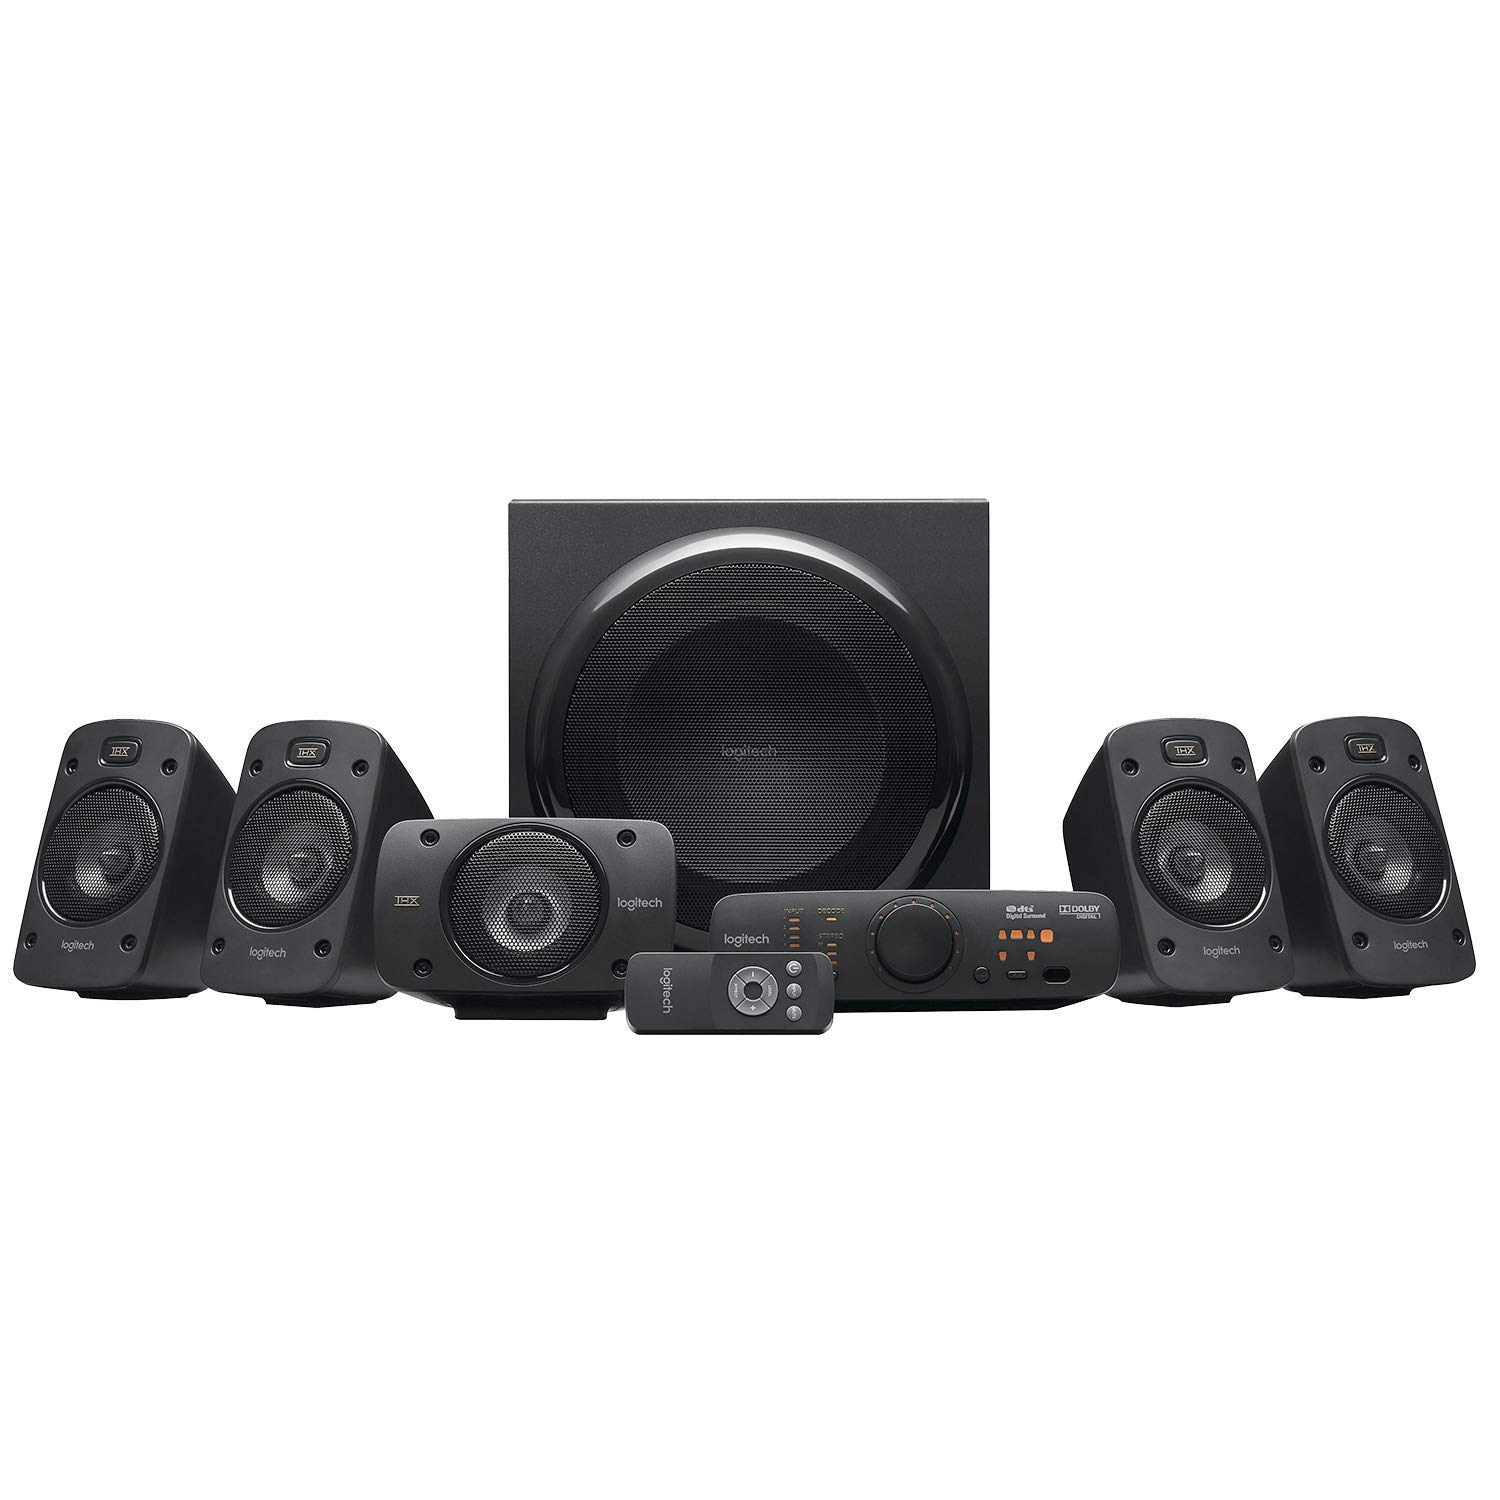 Logitech Z906 Stereo Speakers 3D 5.1 Dolby Surround Sound, THX, 1000 W, Ideal For TV and Living Room